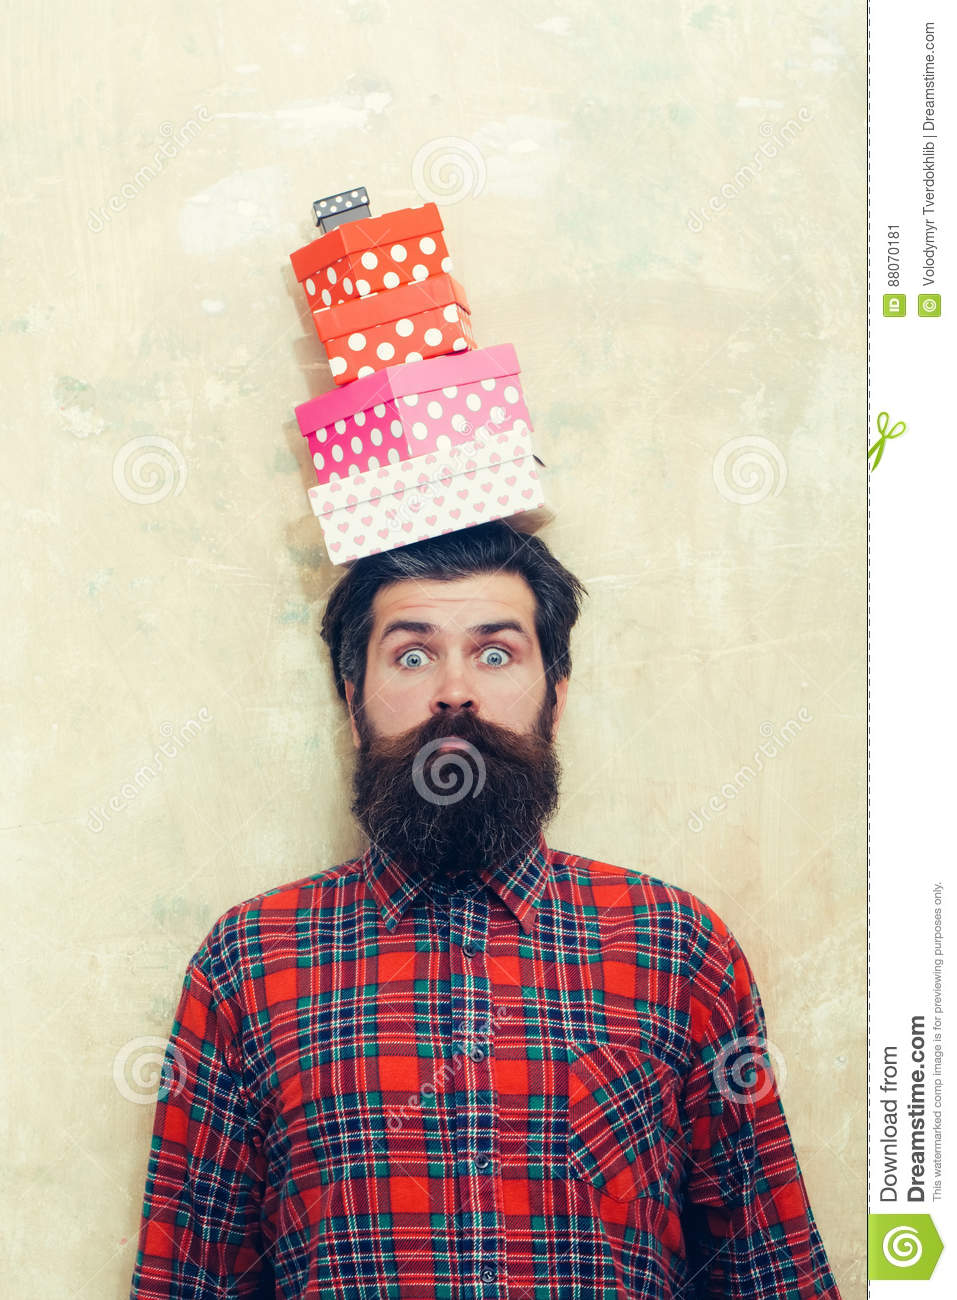 Surprised bearded man holding colorful gift boxes stacked on head